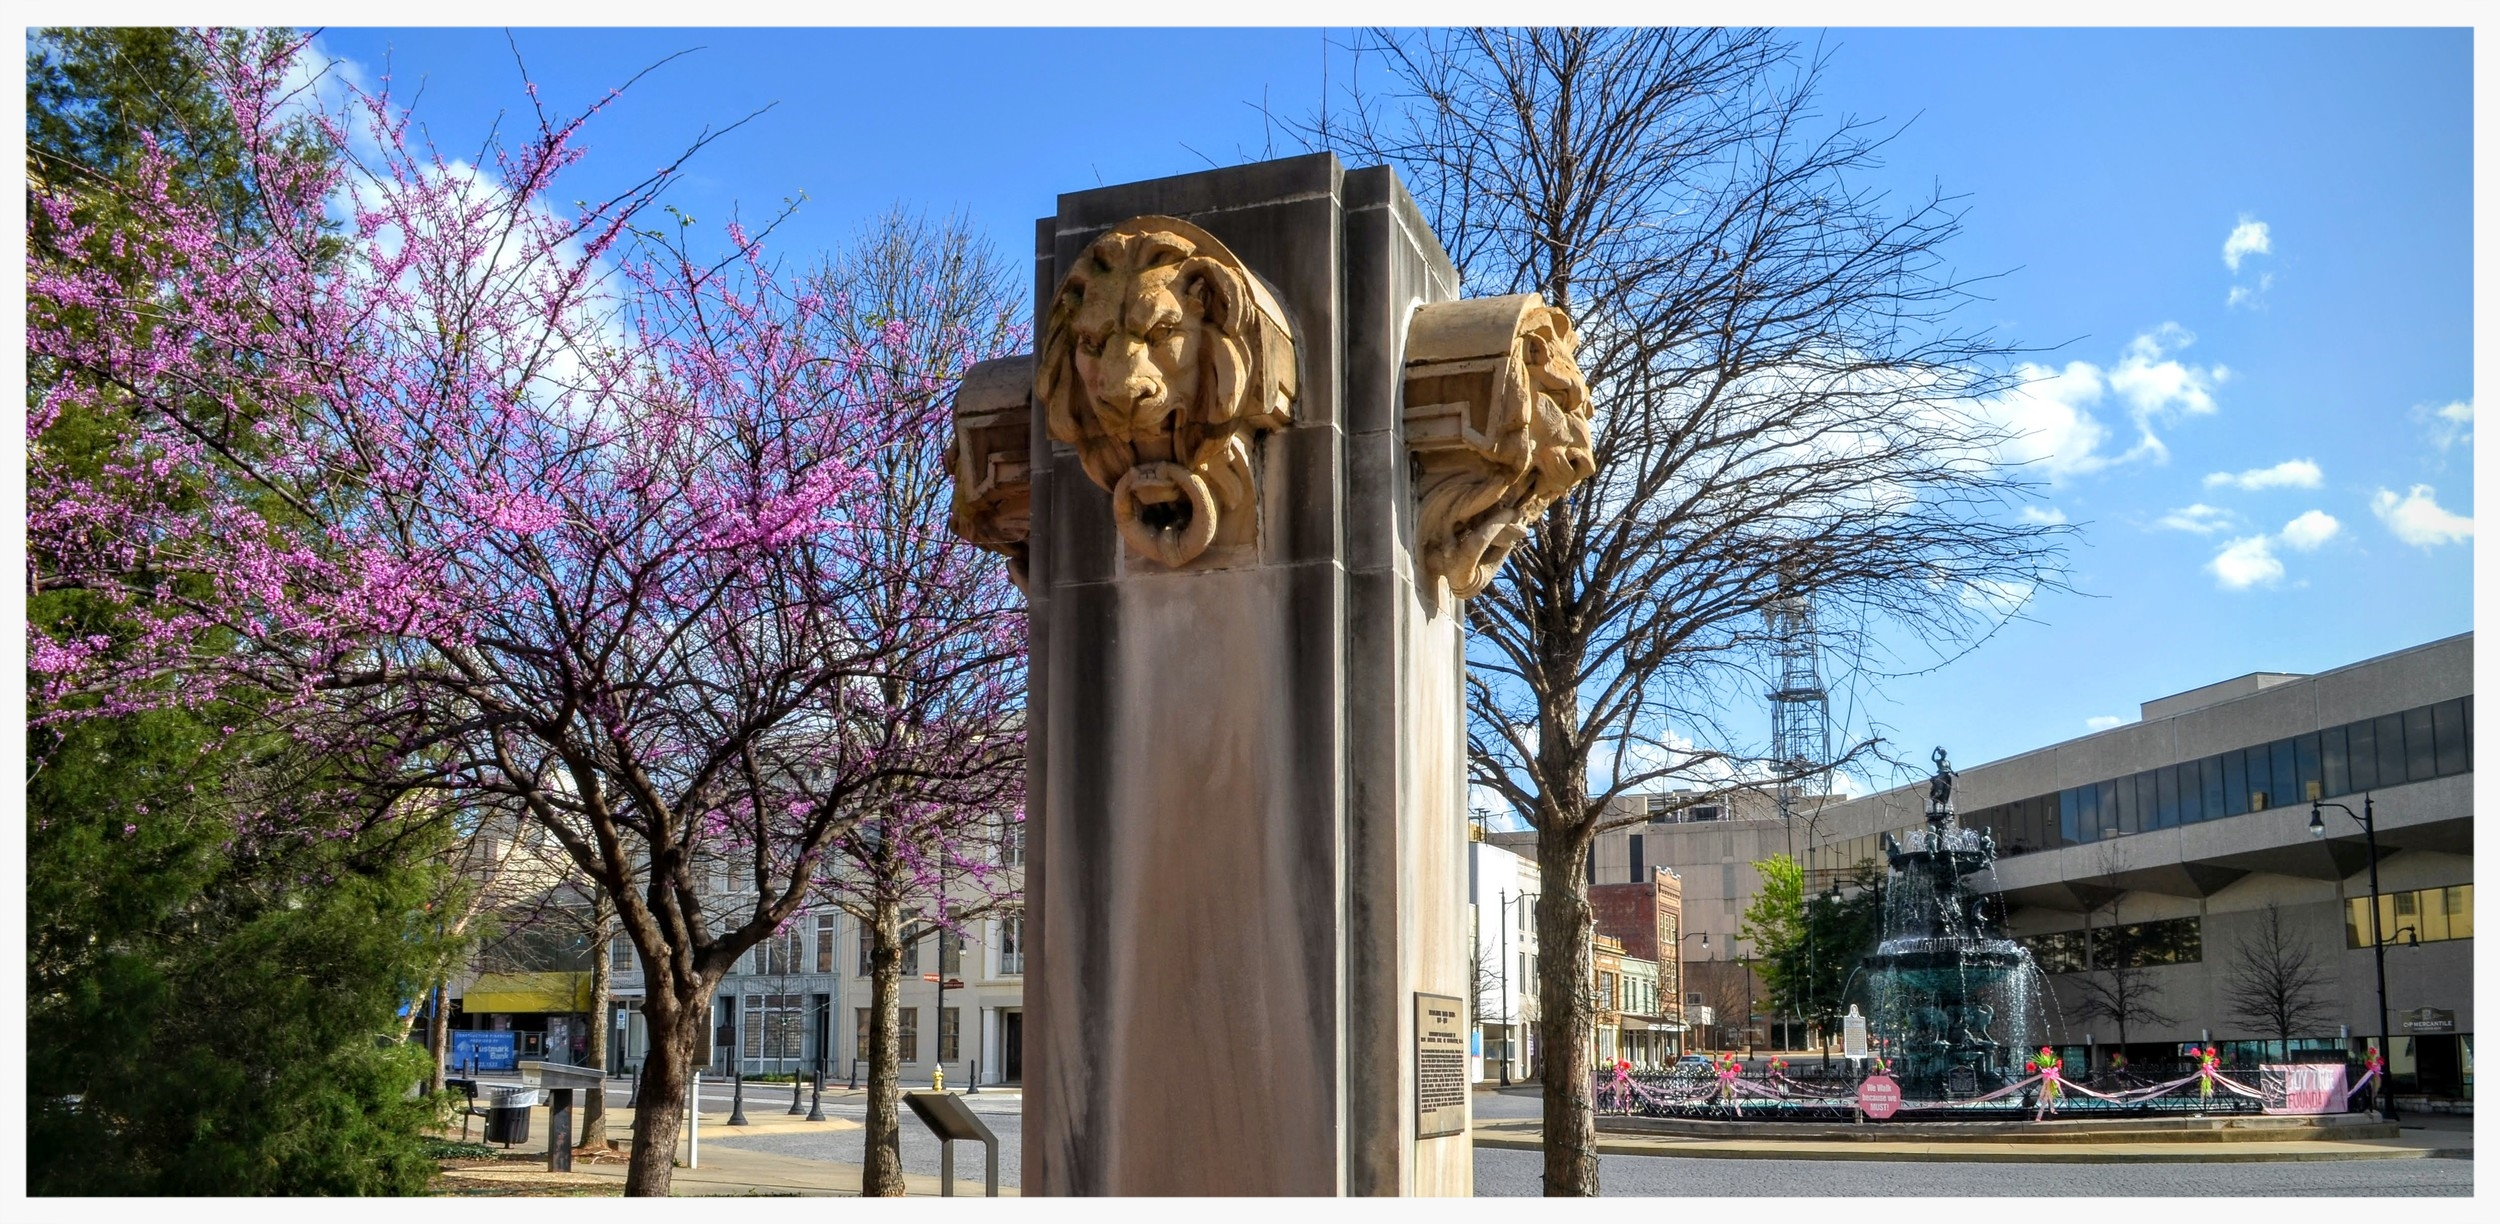 Decorative Lions Heads on their stele on the north side of Court Square, Montgomery, Alabama